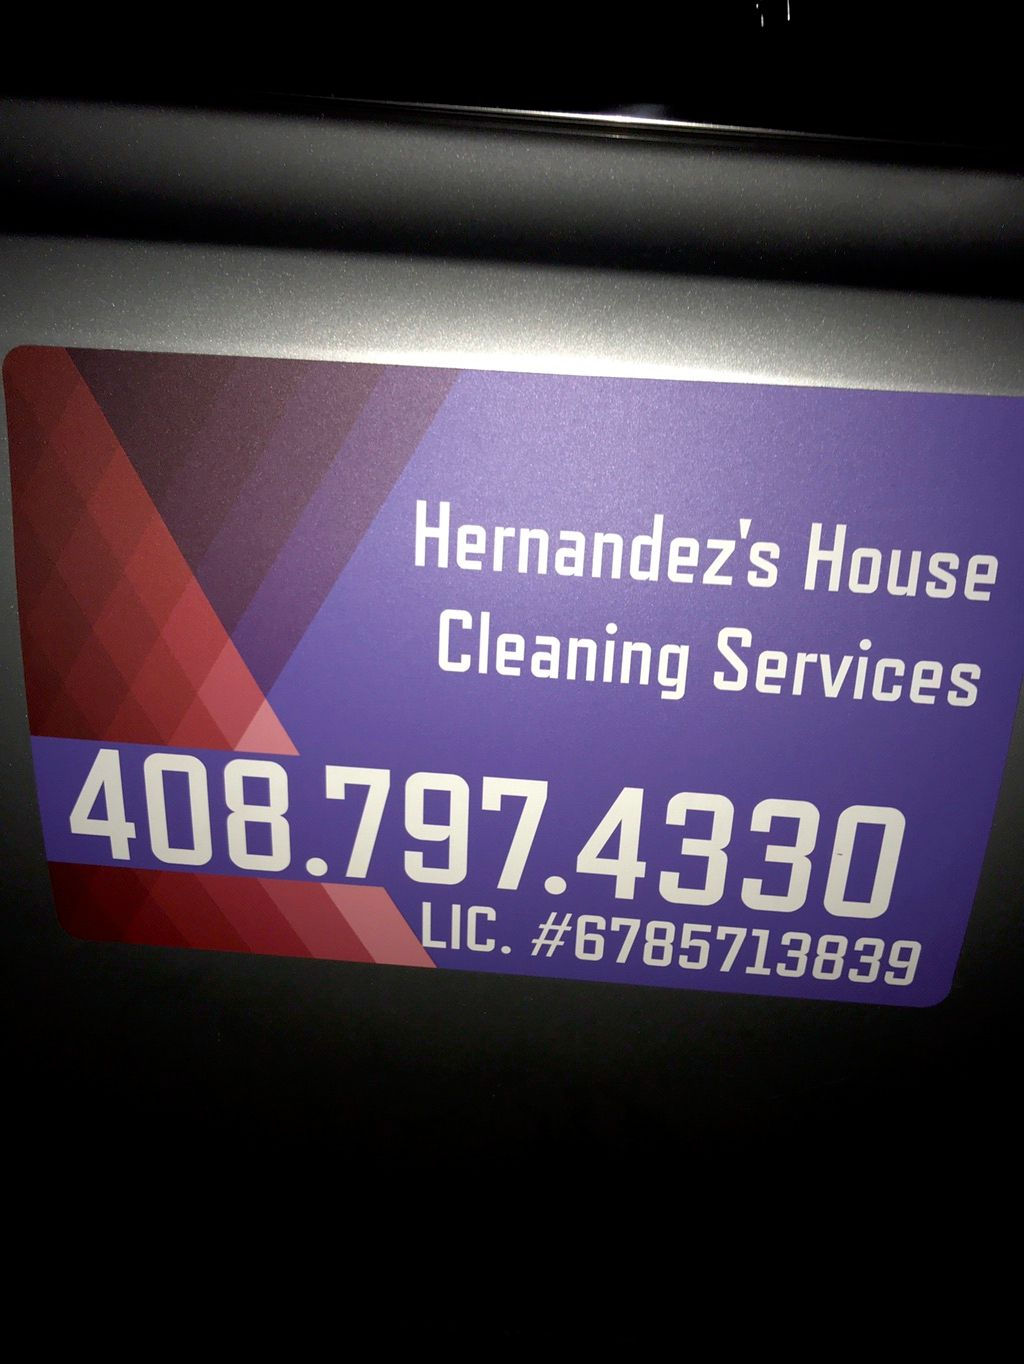 Hernandez's House Cleaning & Painting Services